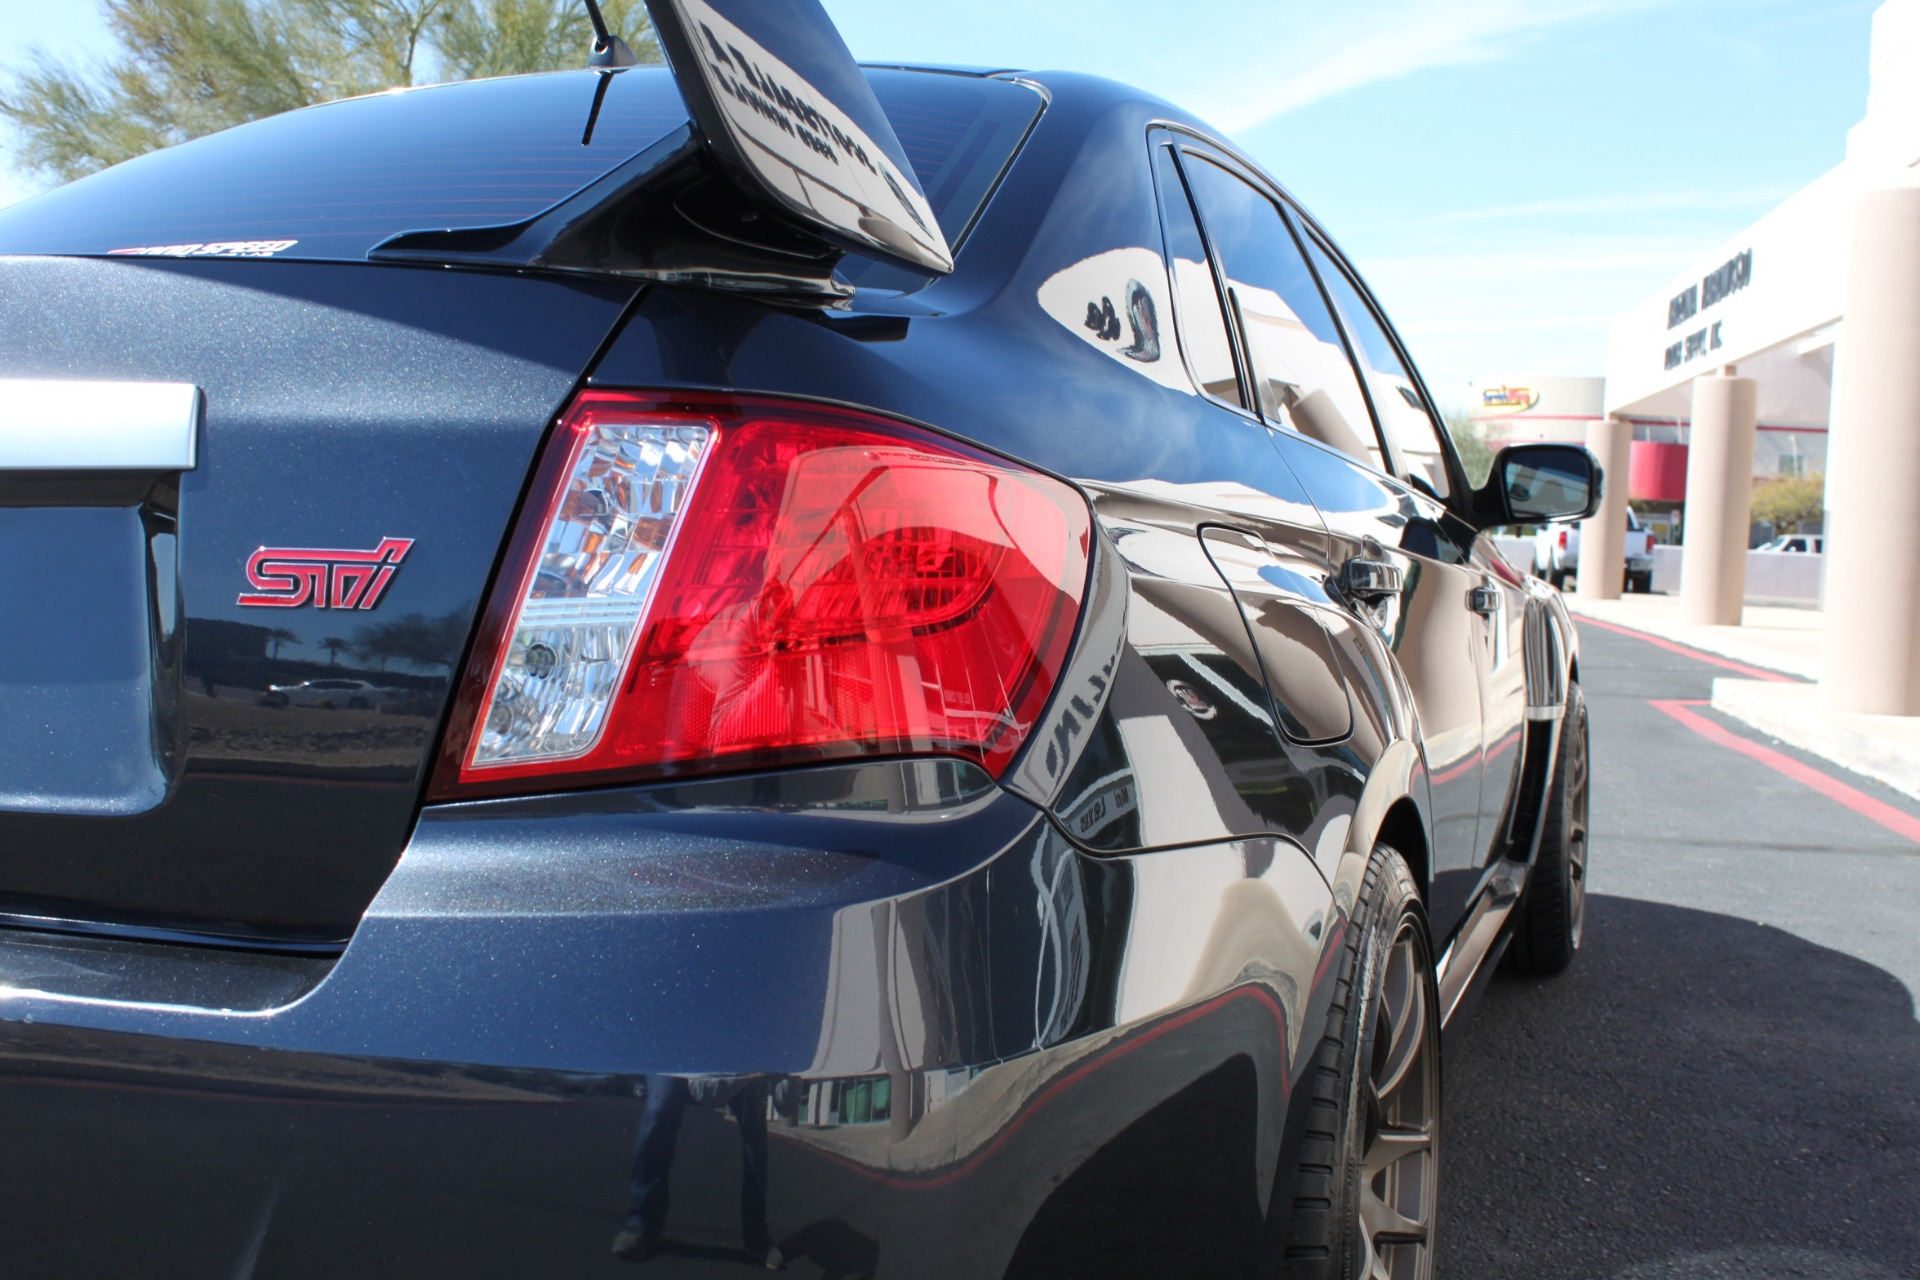 Used-2011-Subaru-Impreza-Sedan-WRX-STI-Chevrolet